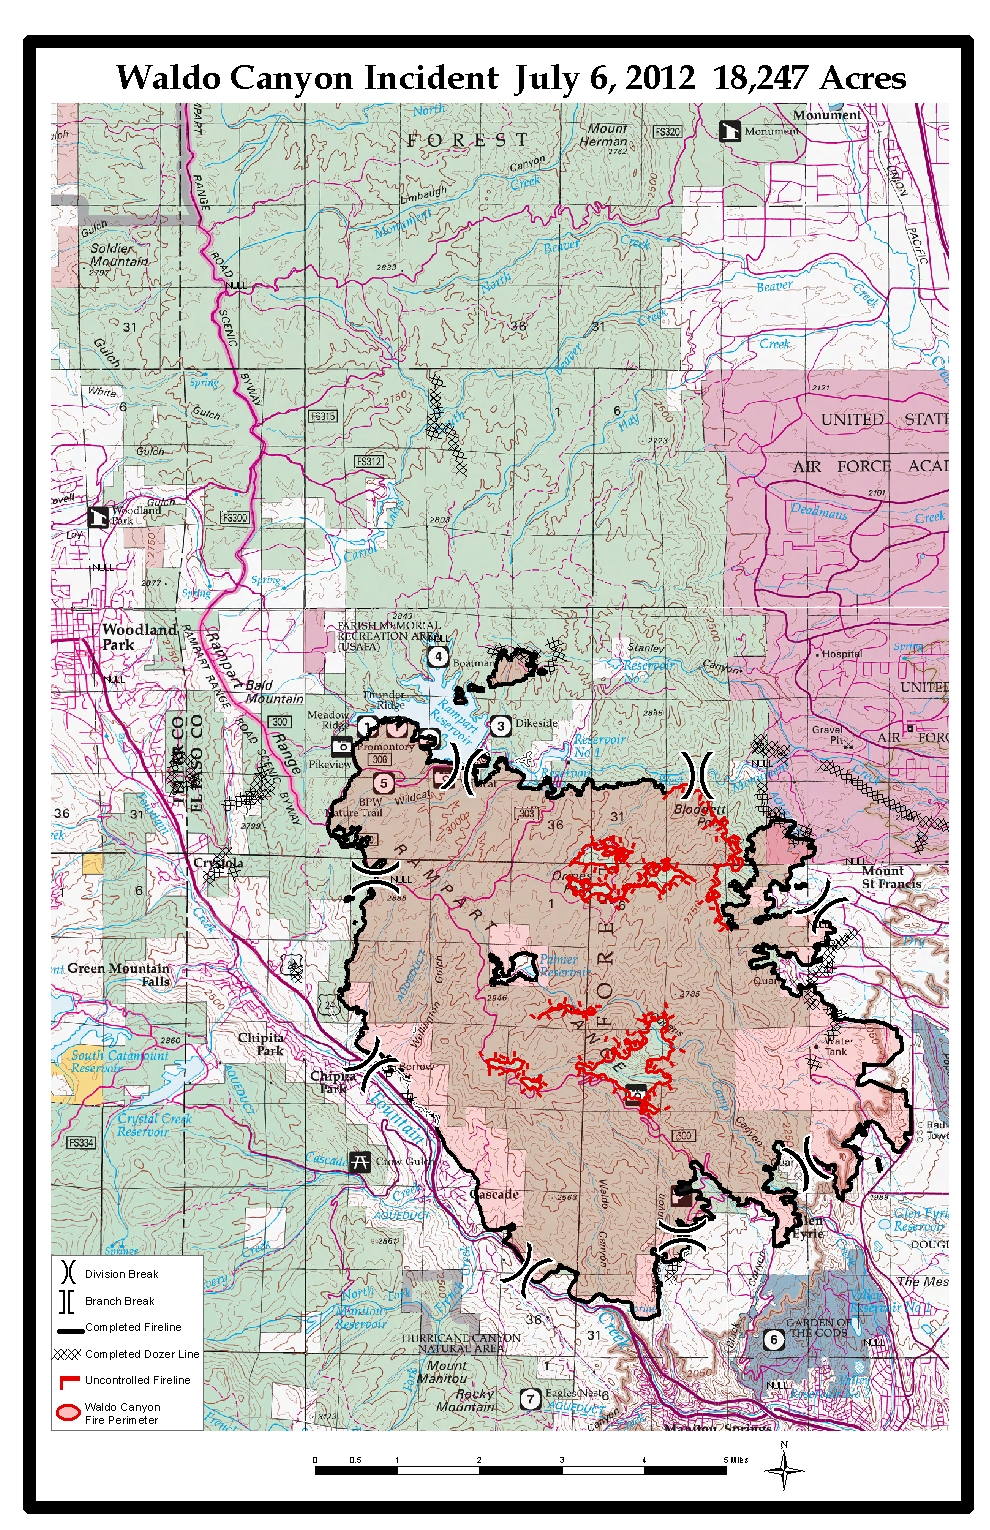 Waldo Canyon Fire Wildlandfires Info